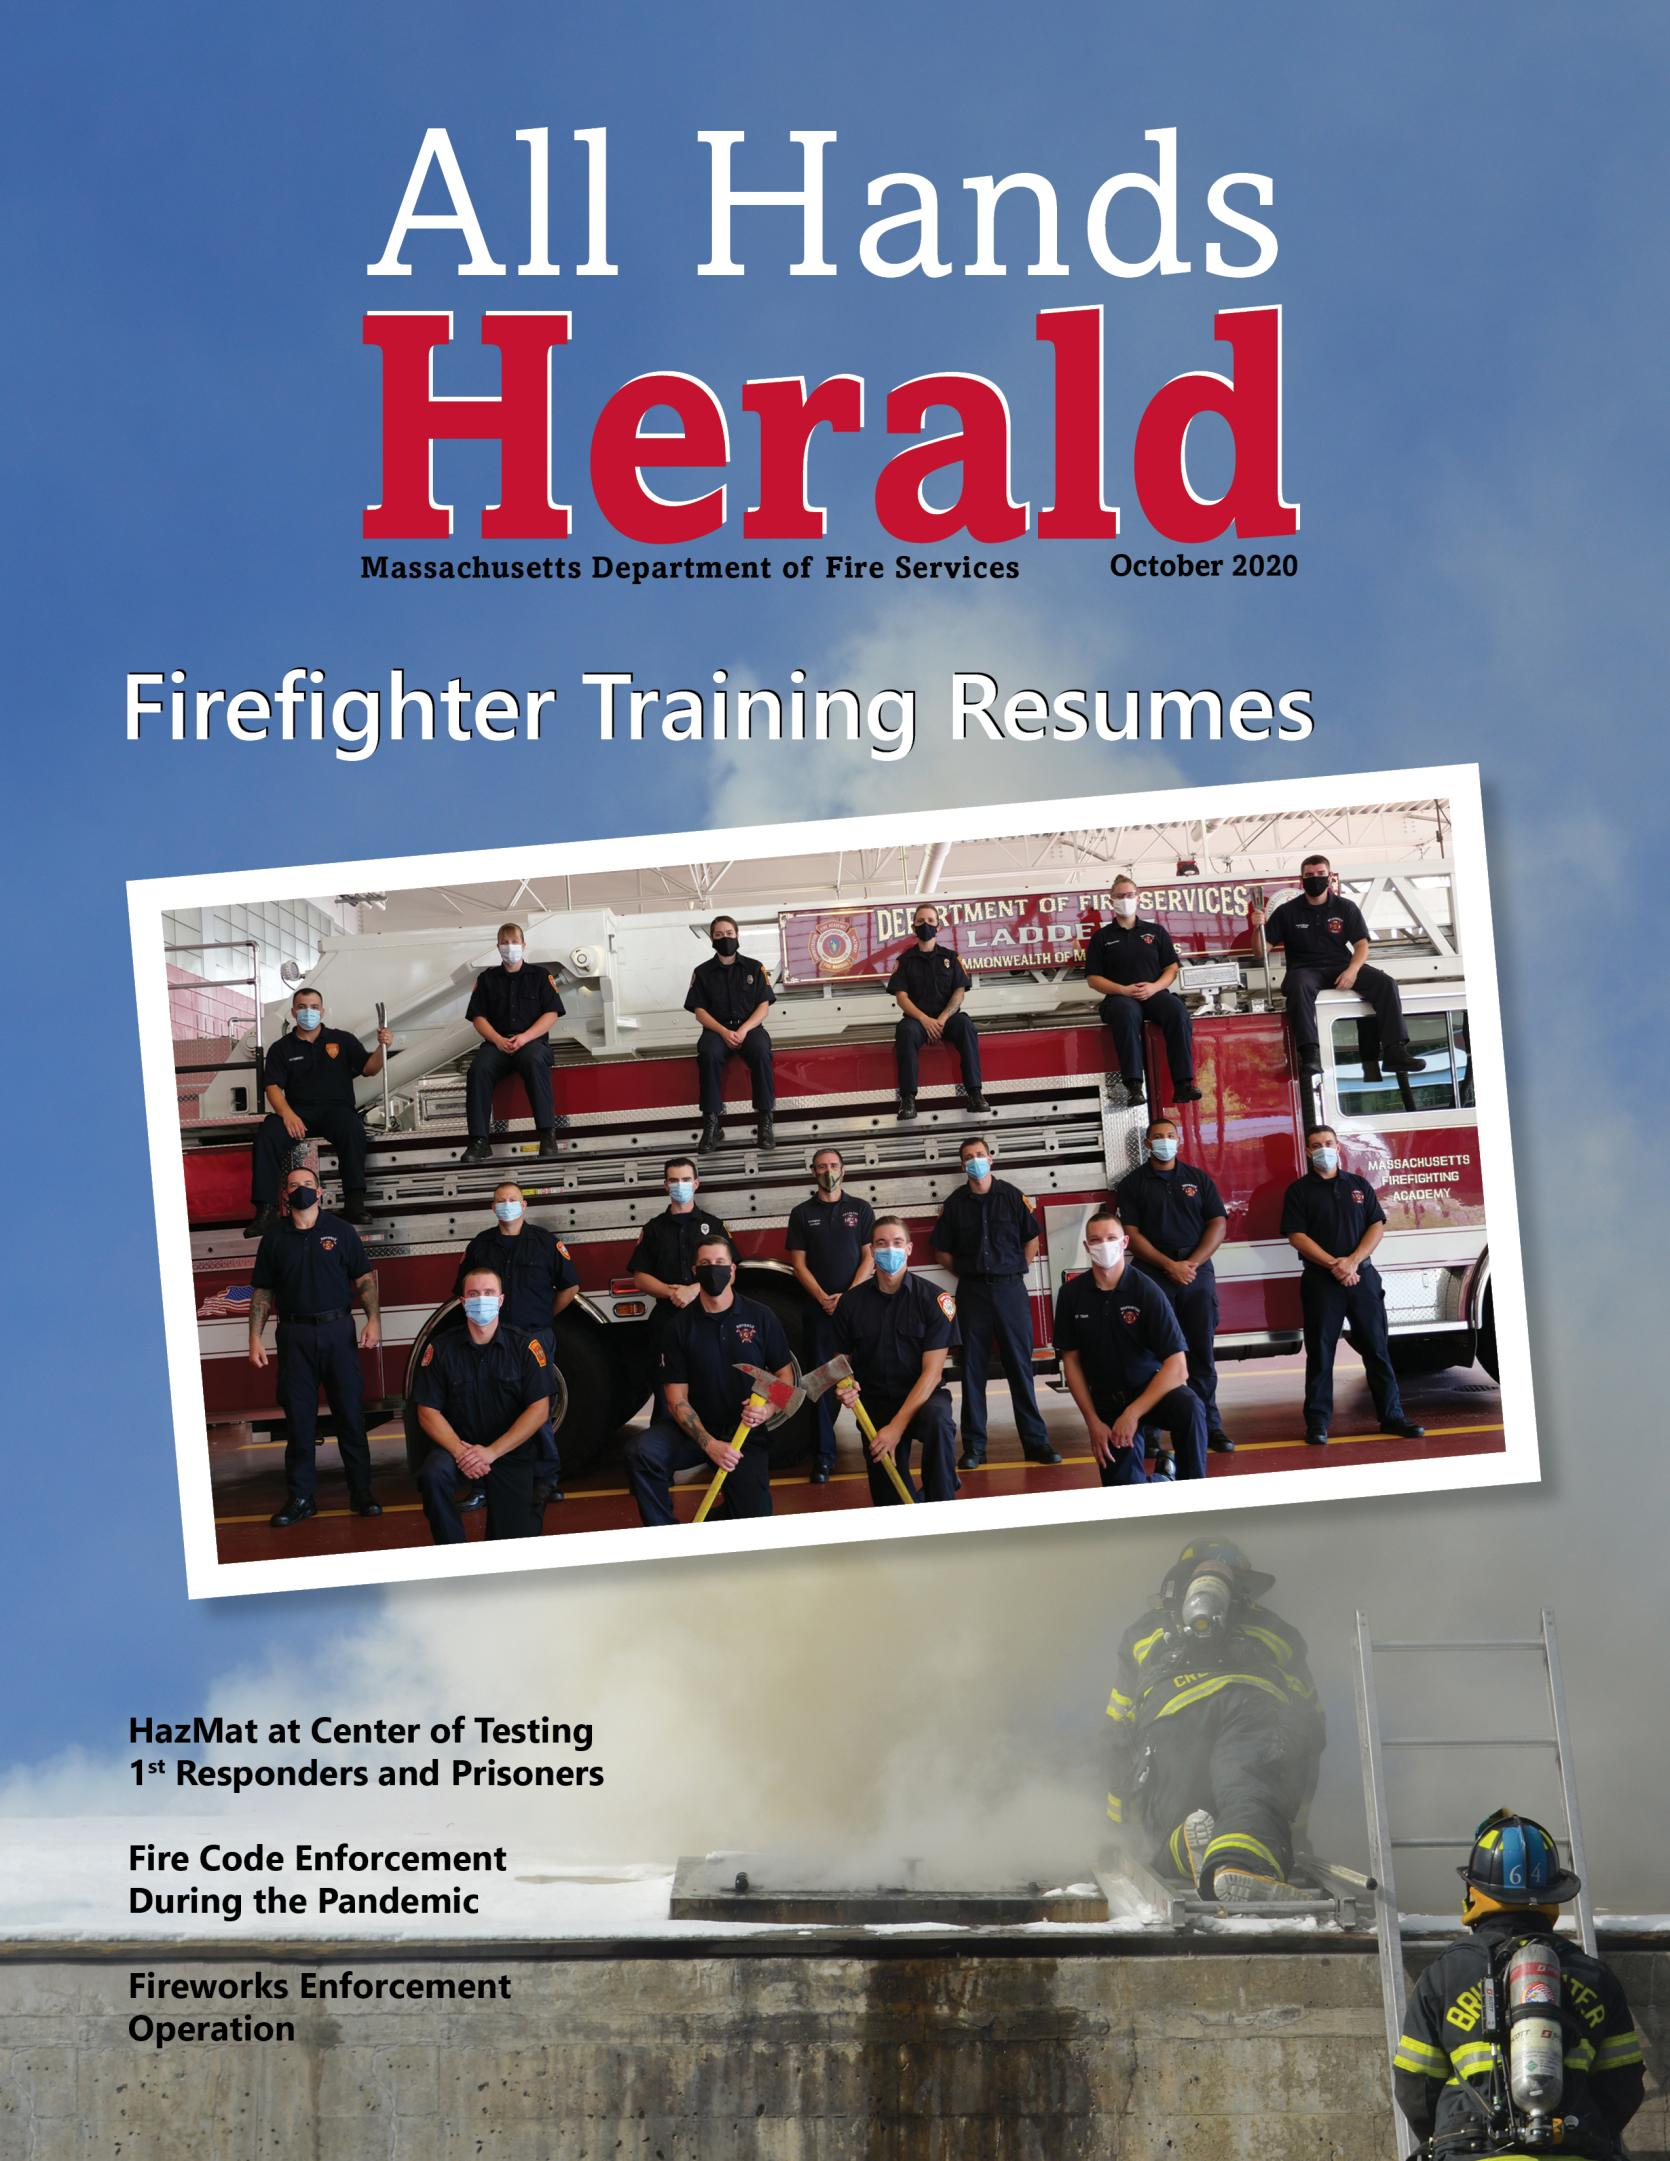 Cover of the October 2020 All Hands Herald featuring graduation picture of recruit class.